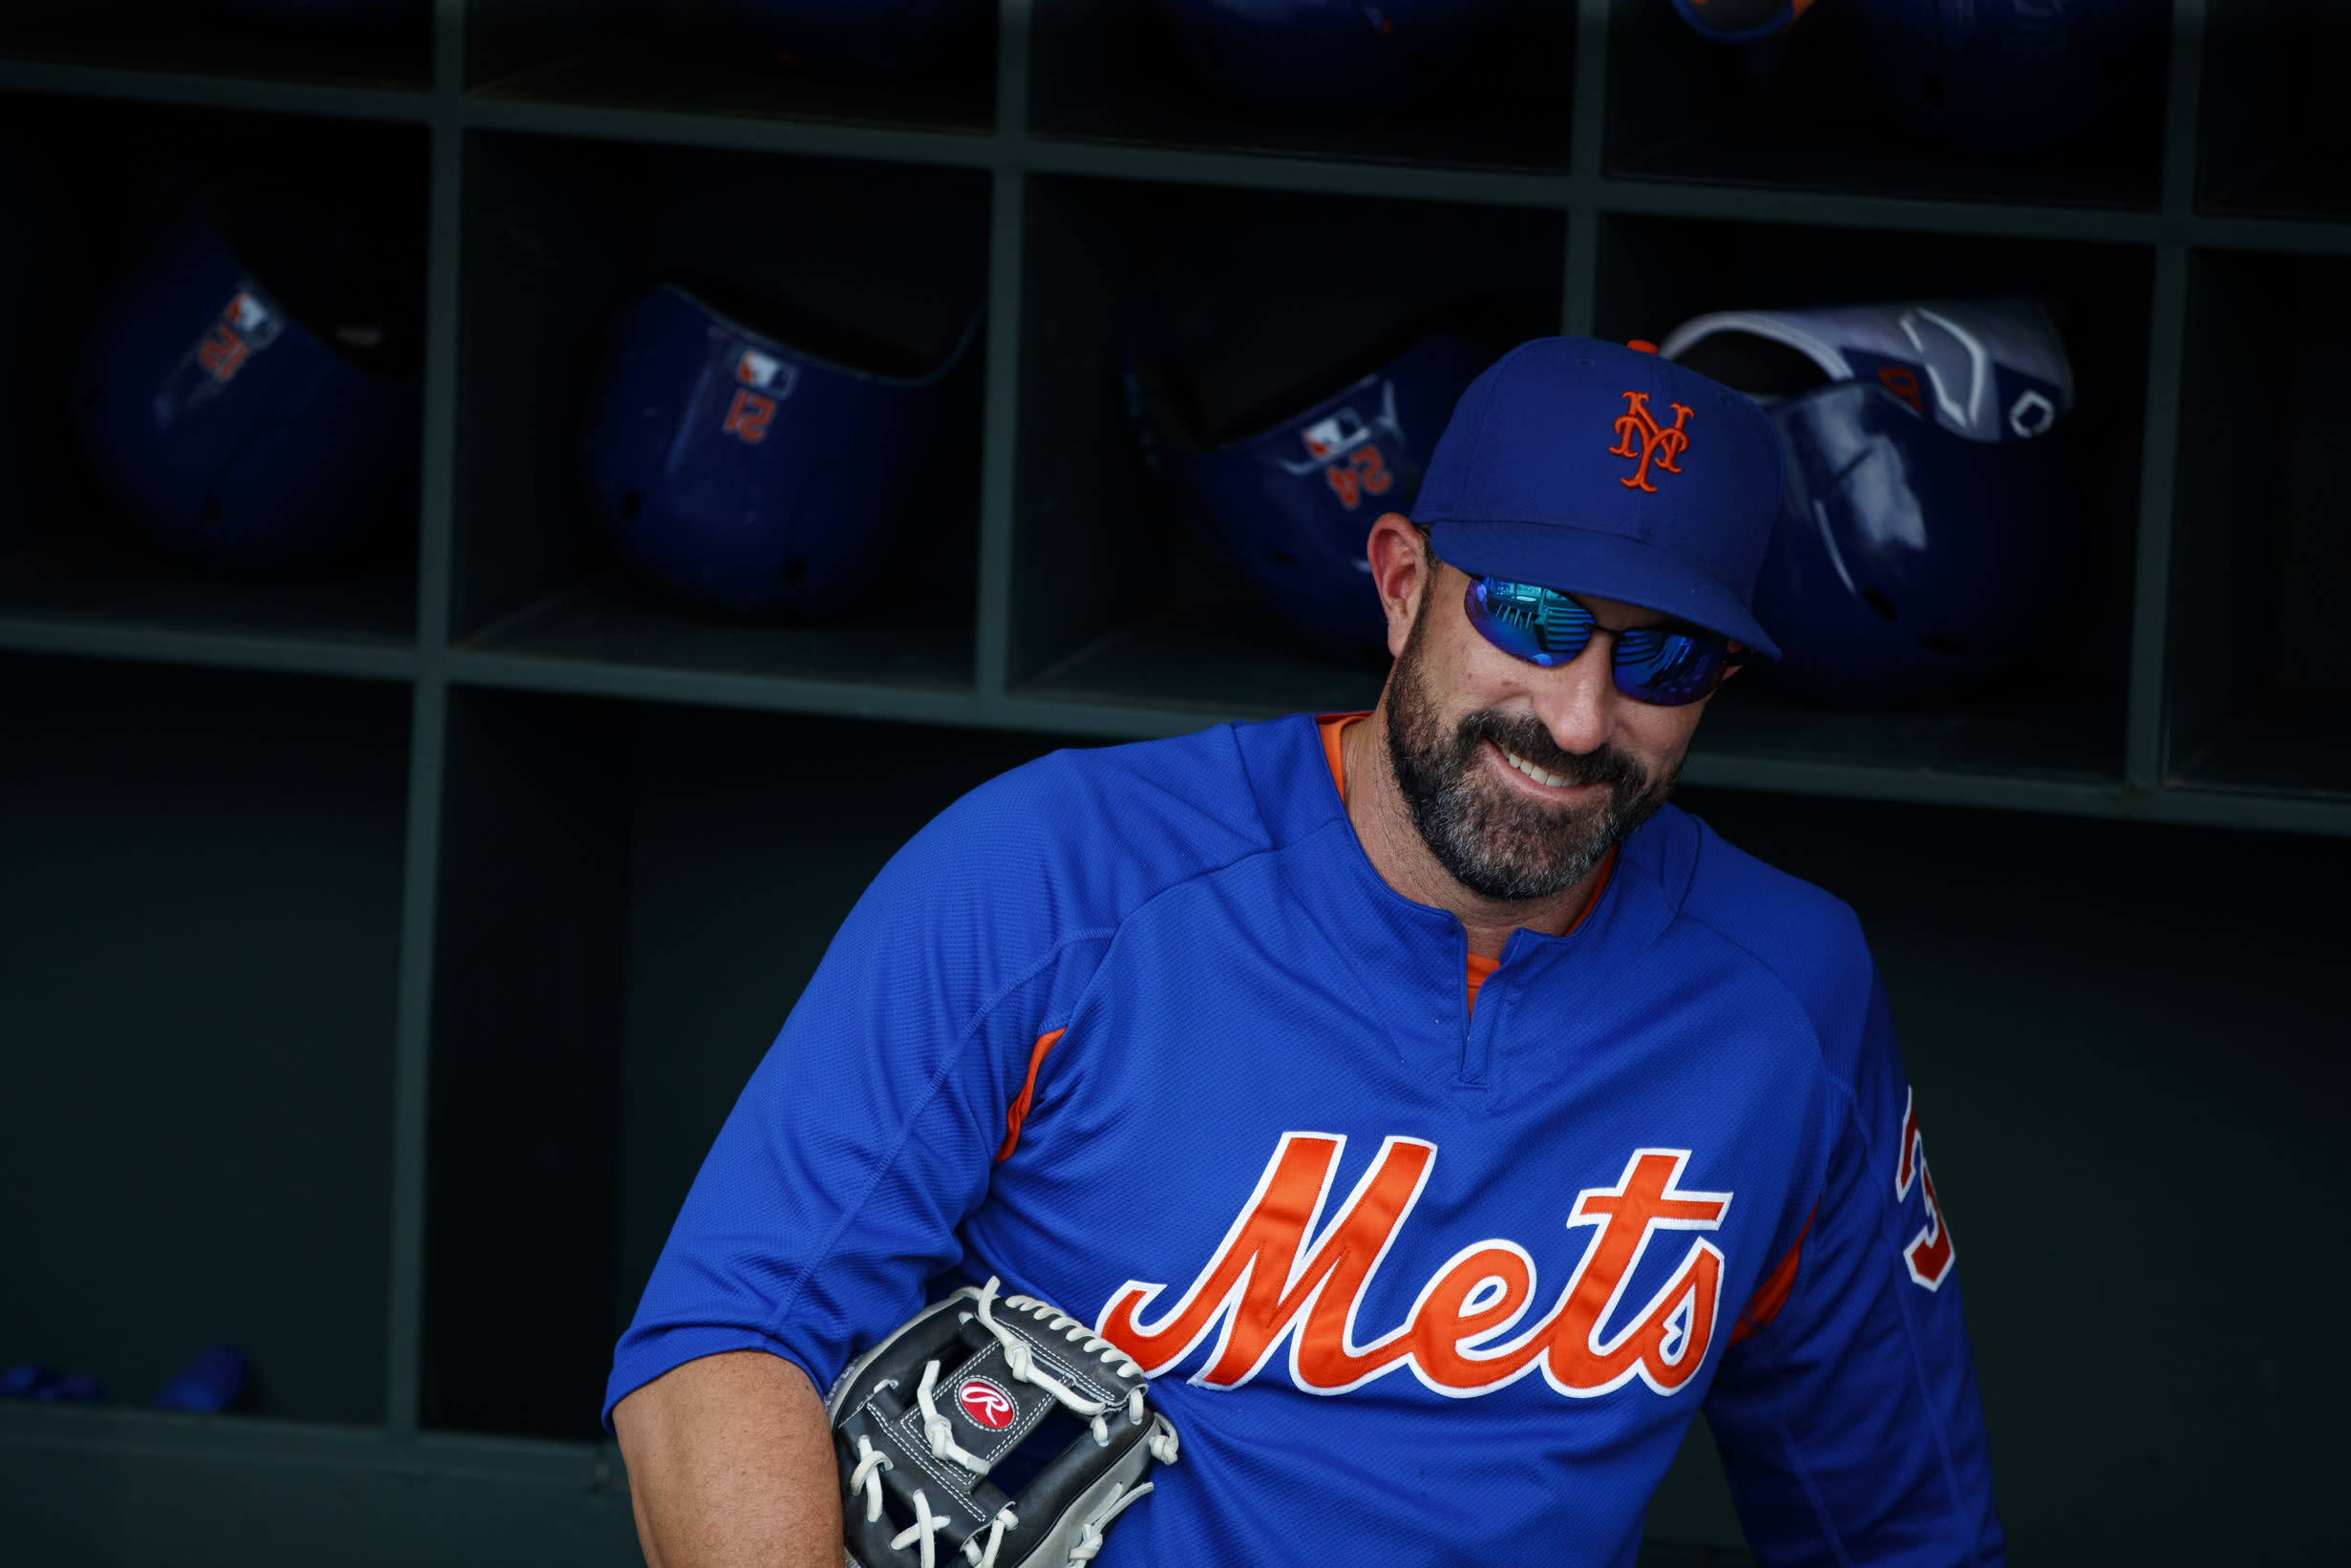 New York Mets manager Mickey Callaway smiles during batting practice before a baseball game against the Philadelphia Phillies, Monday, June 24, 2019, in Philadelphia. (AP Photo/Matt Slocum)